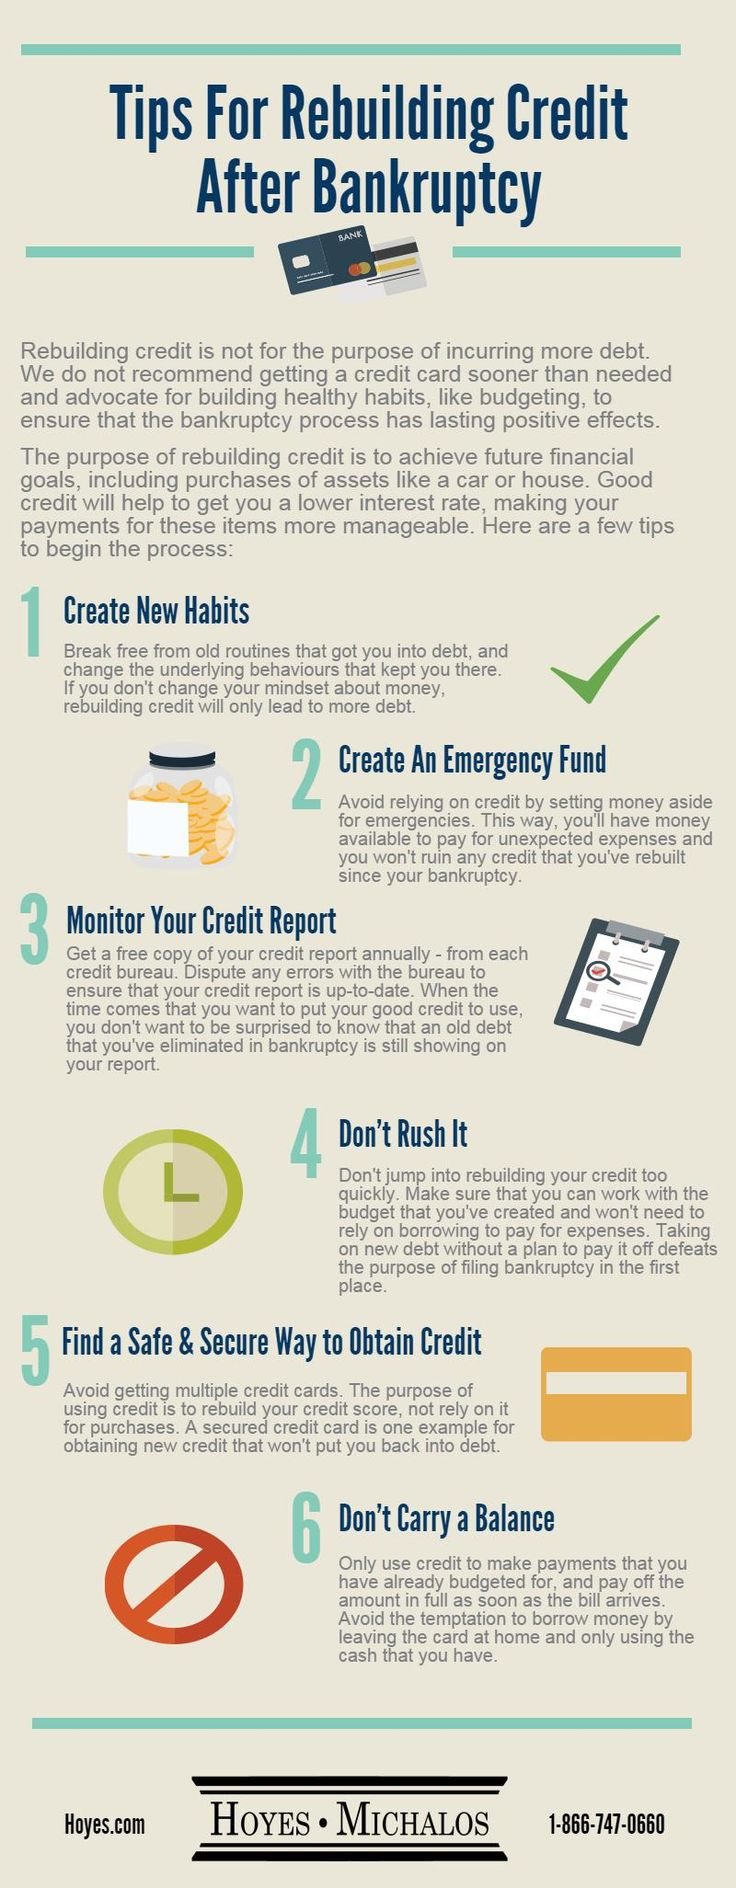 Worried about your credit? Here are a few ways to rebuild your credit after a bankruptcy or consumer proposal. Bankruptcy is a fresh start toward debt freedom and financial well-being.